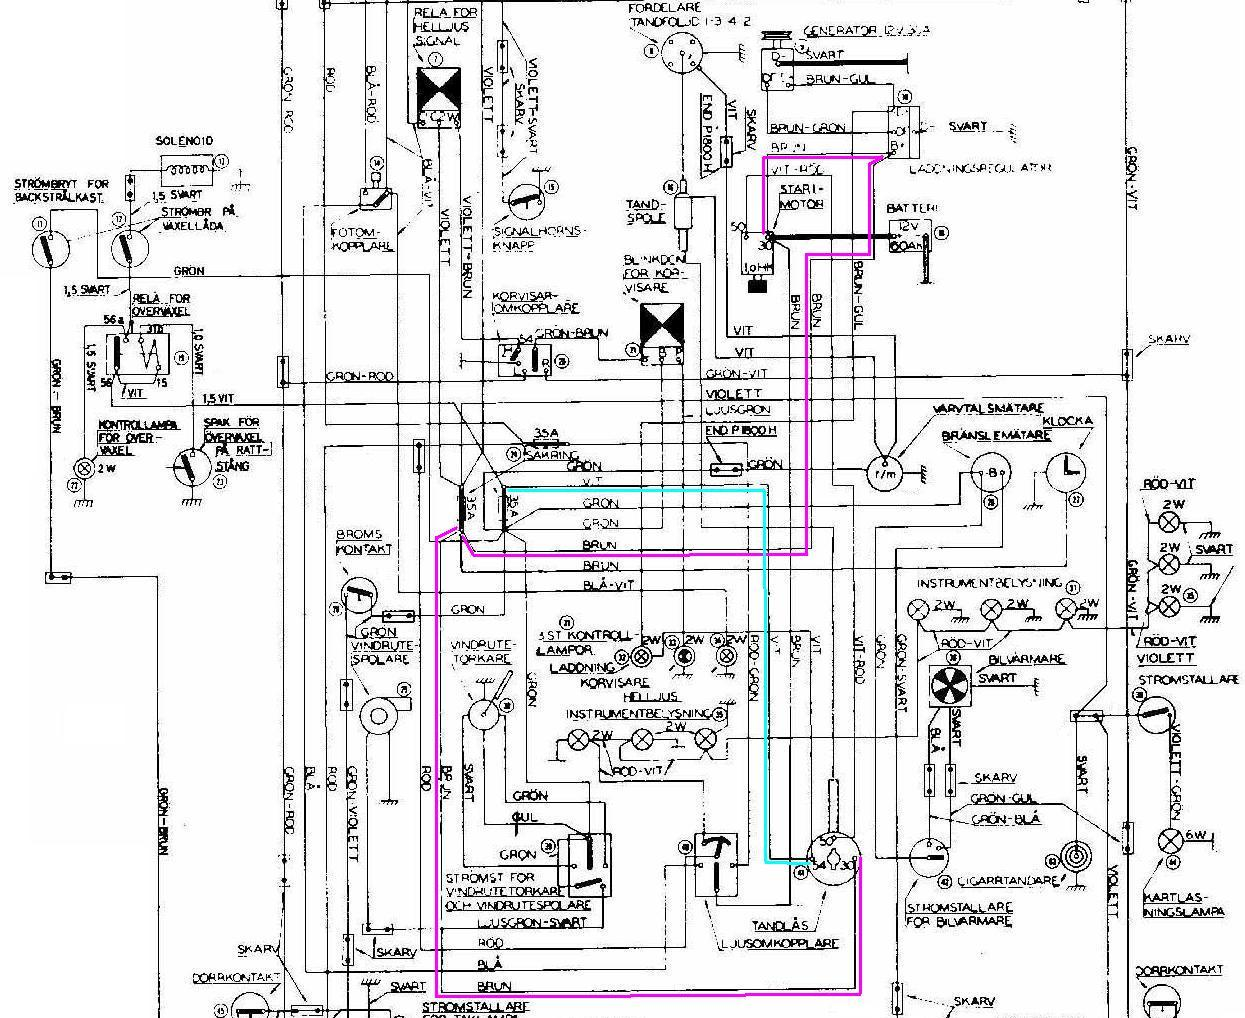 wiring diagram volvo amazon schematics wiring diagrams u2022 rh parntesis  co Volvo Semi Truck Wiring Diagram Volvo Fuel Pump Wiring Diagram